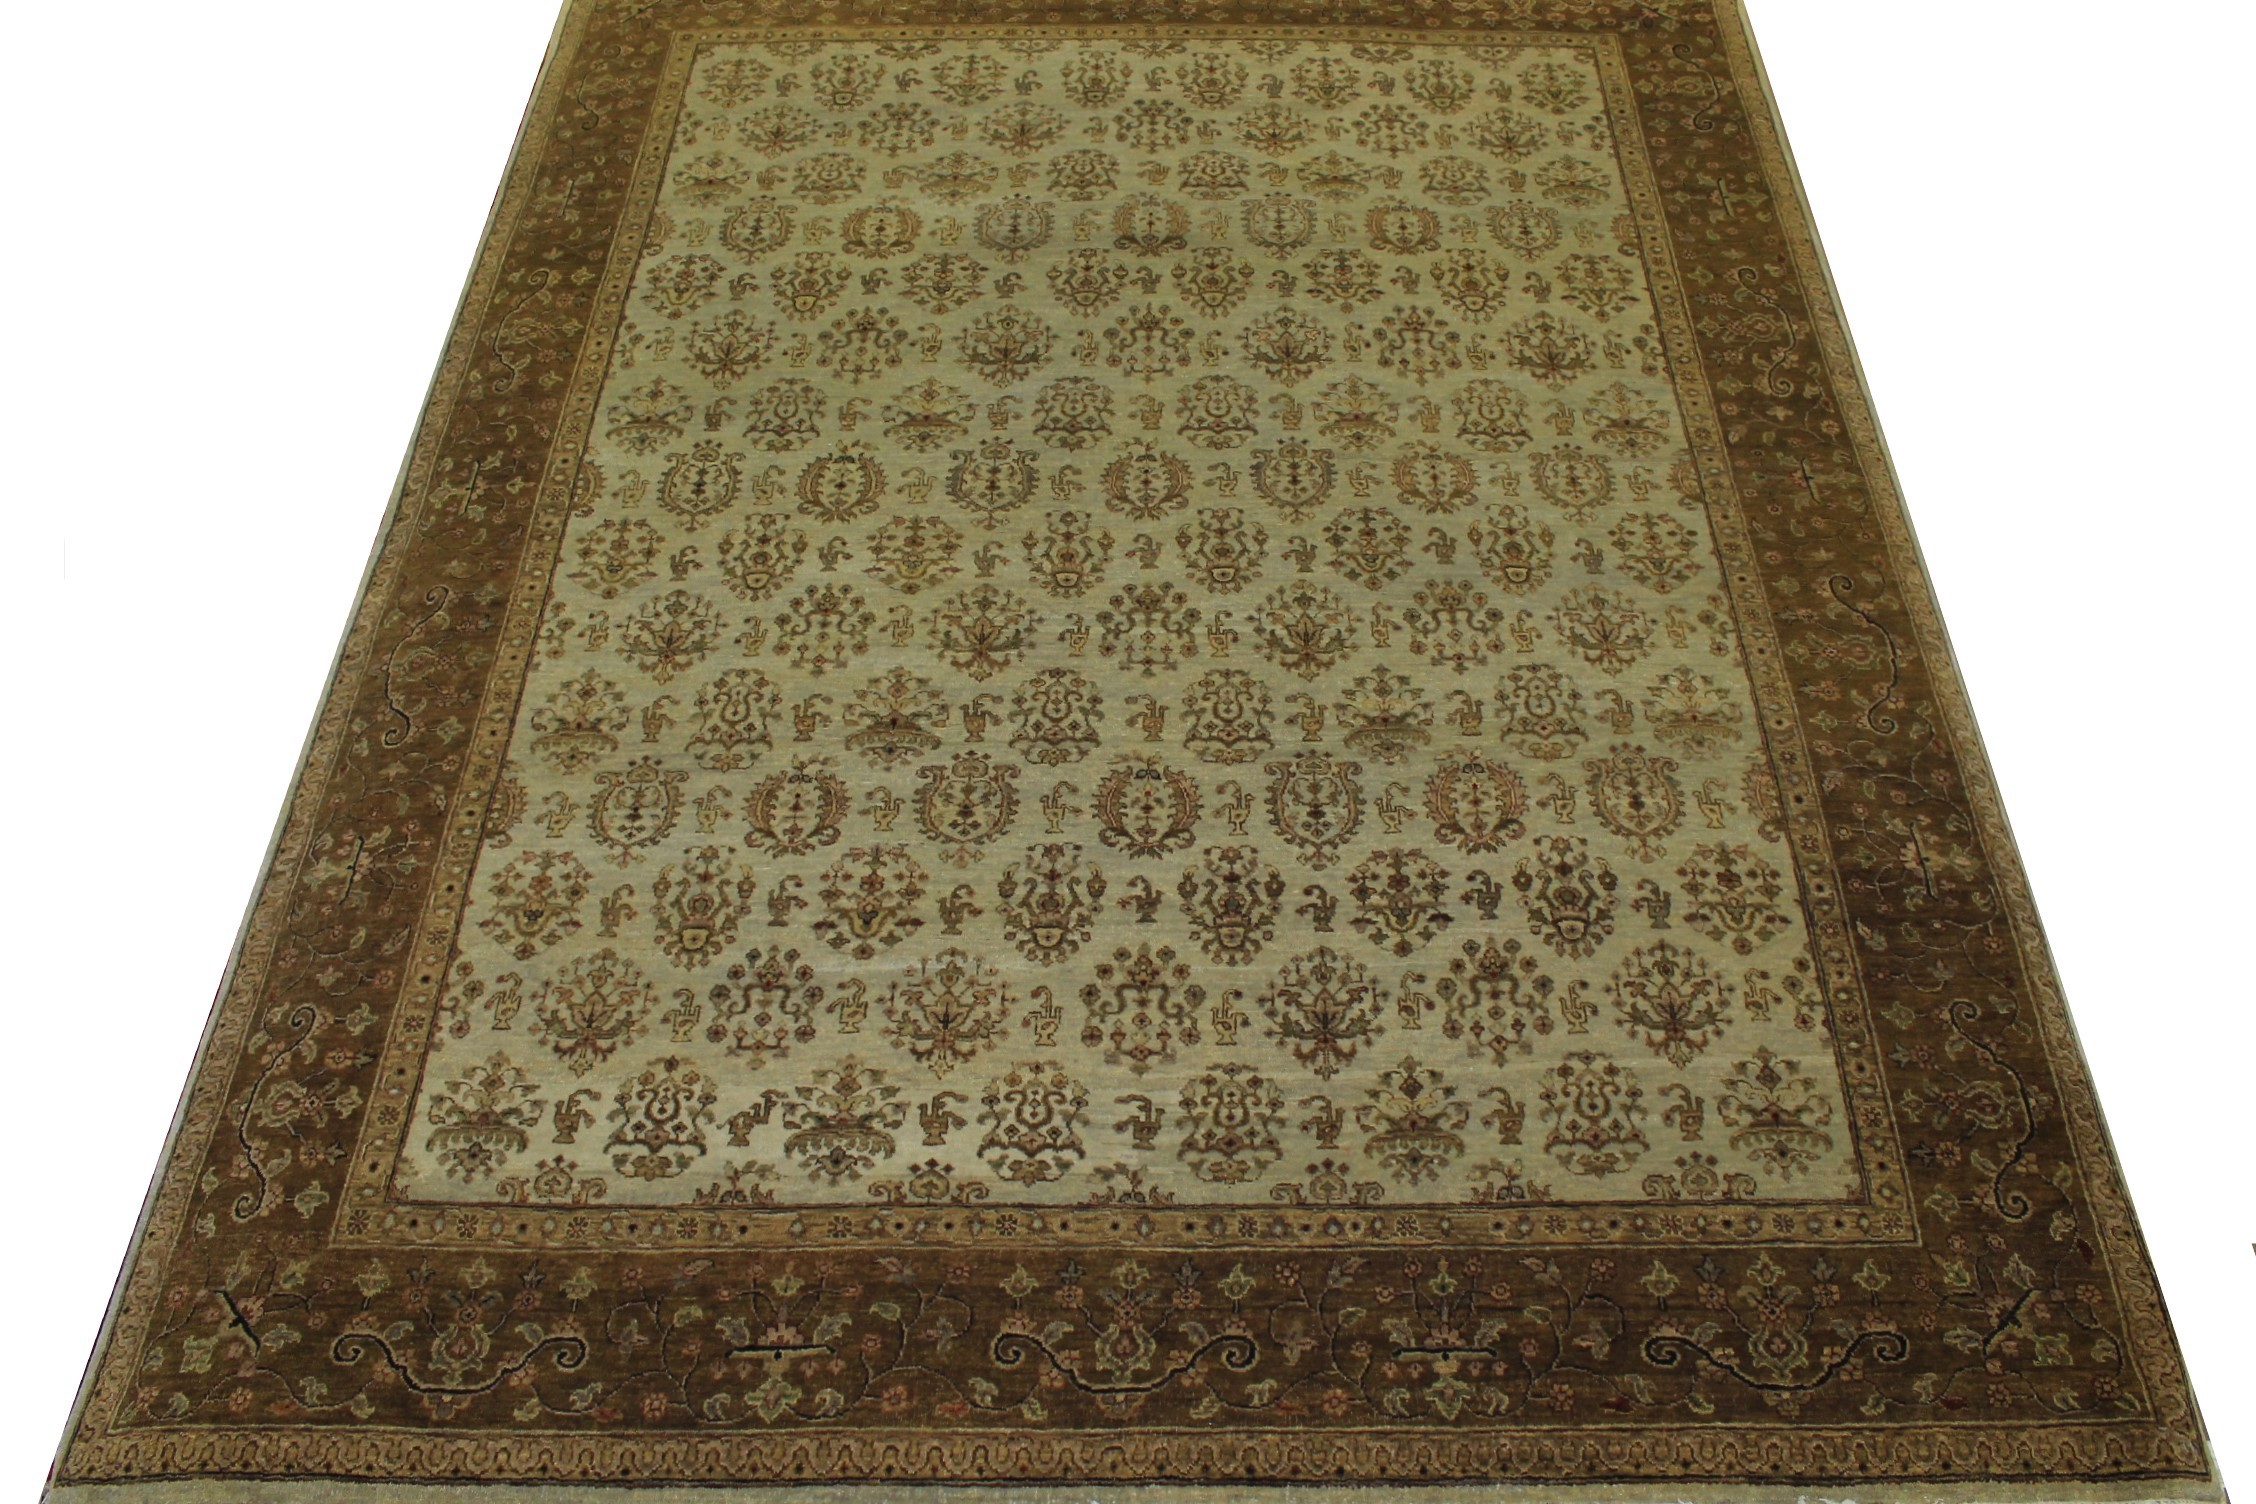 8x10 Antique Revival Hand Knotted Wool Area Rug - MR11764